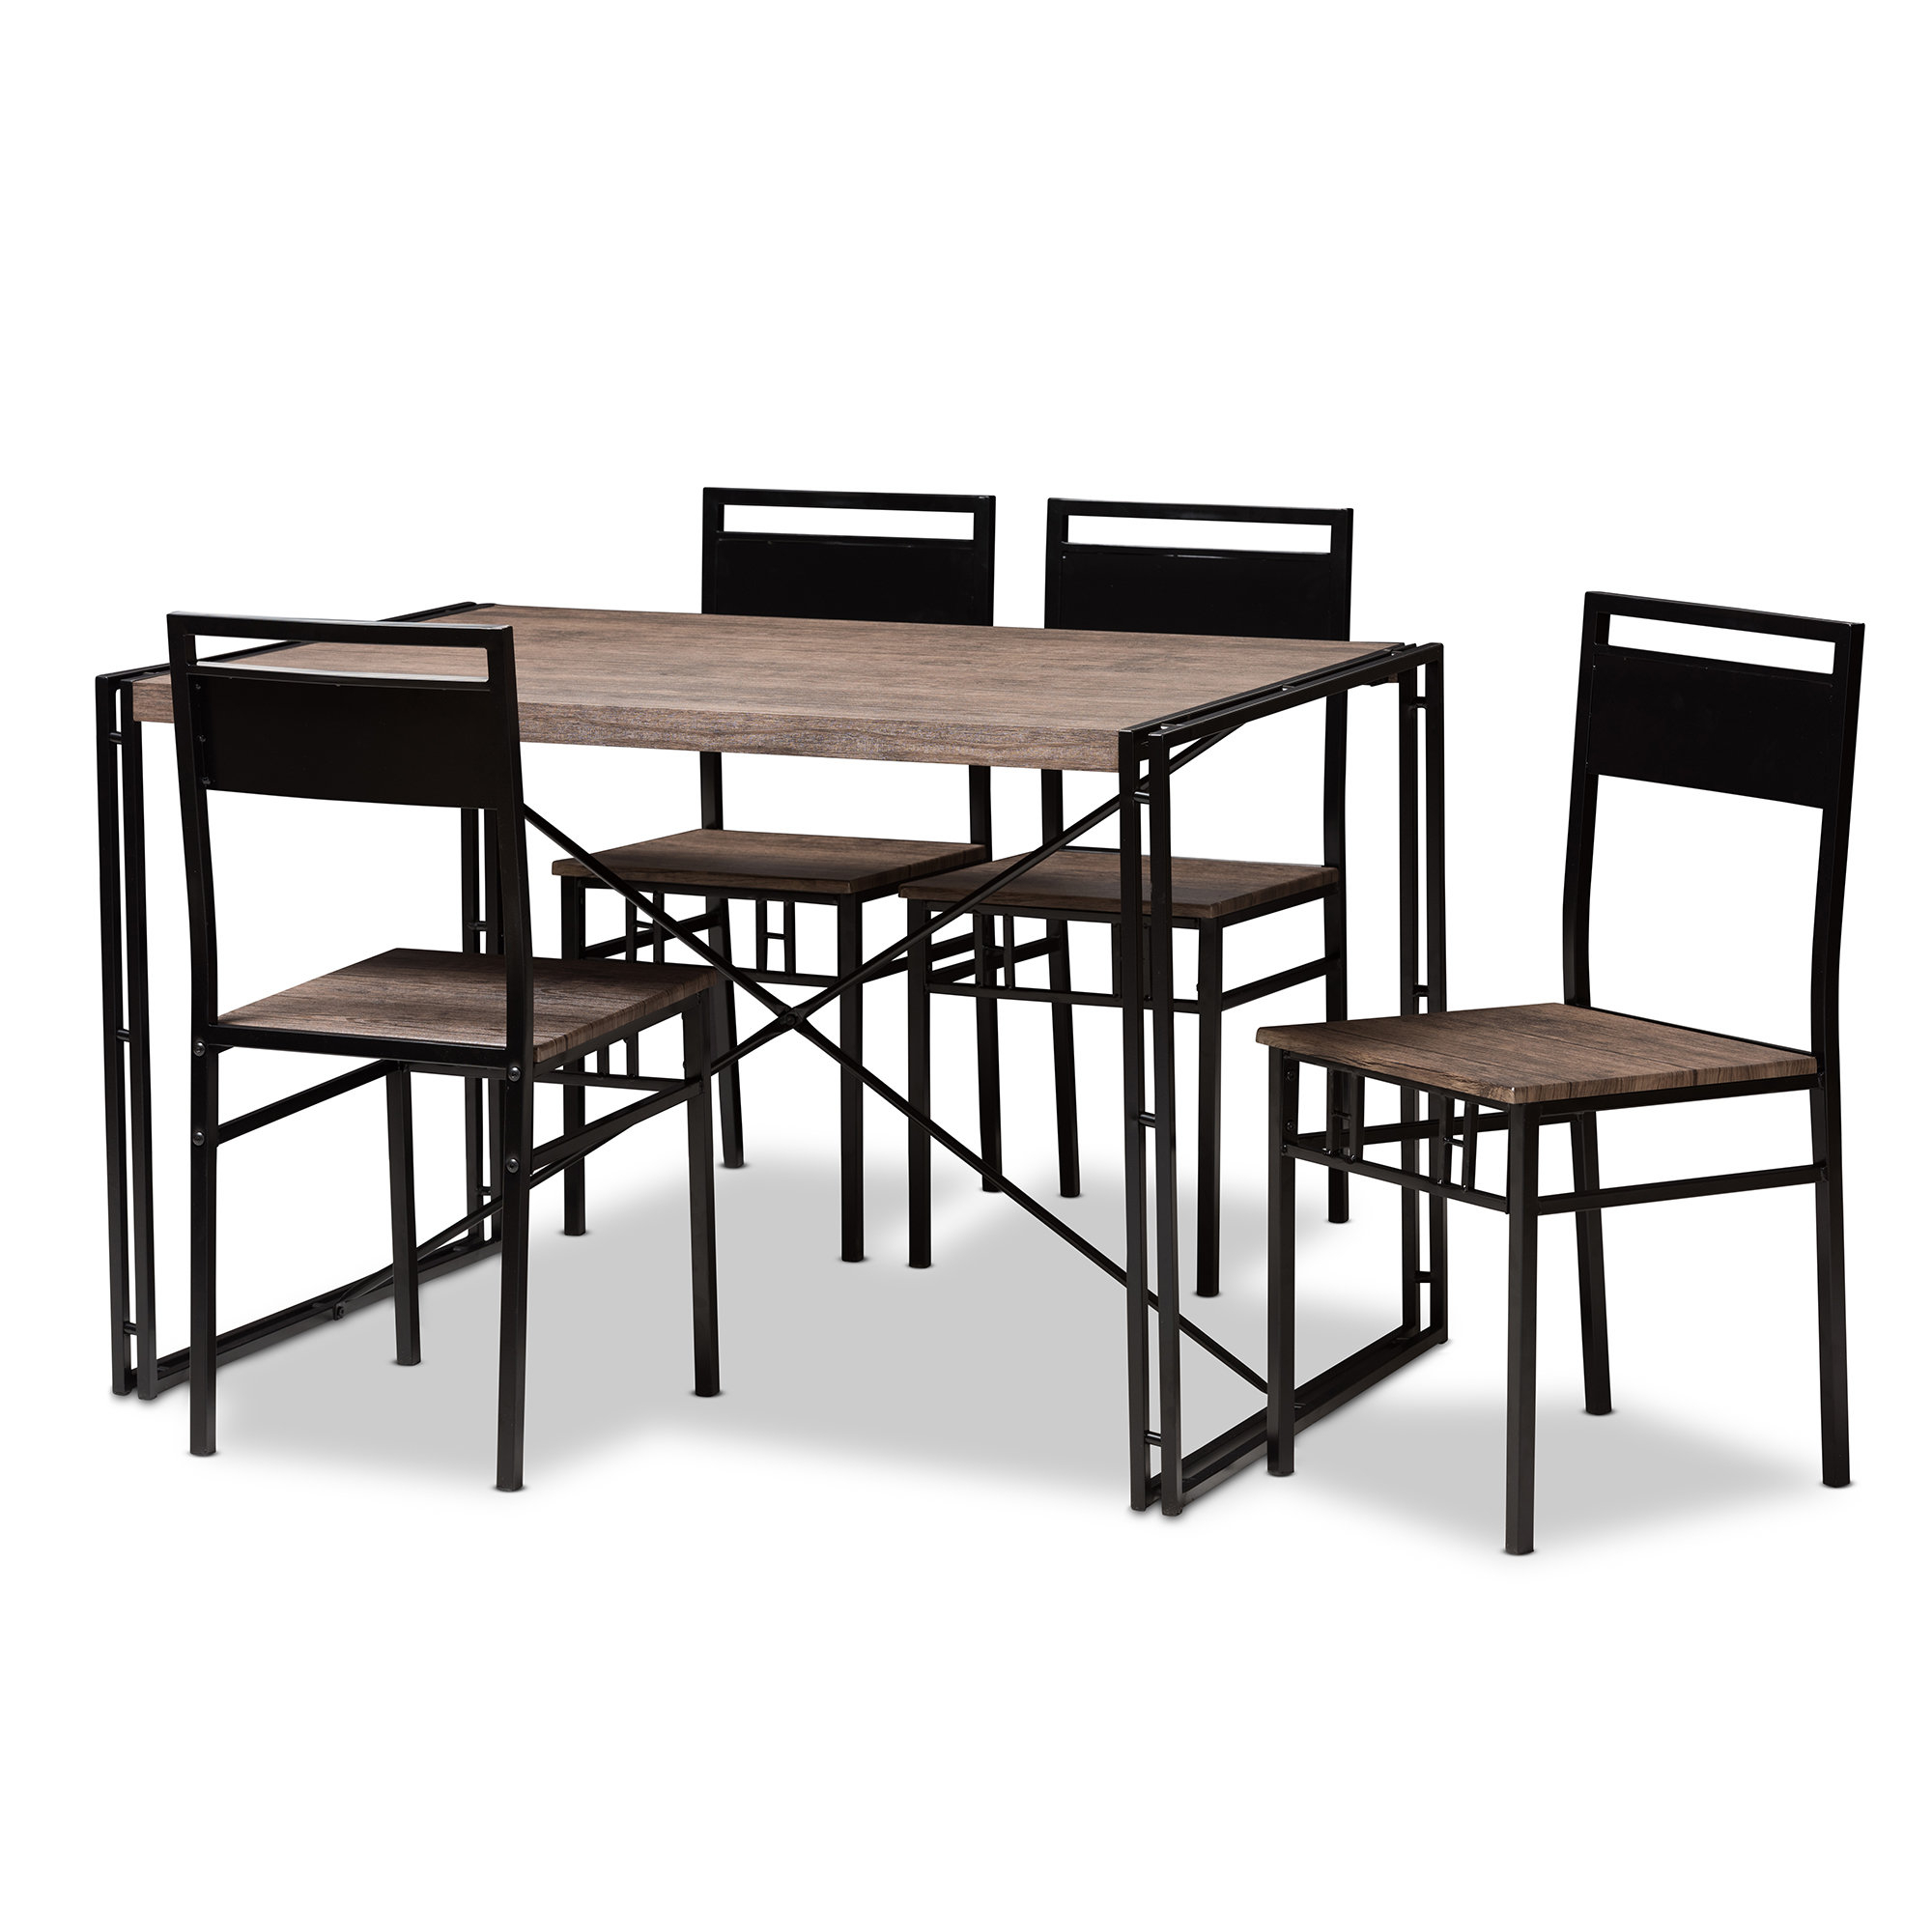 Mizell 5 Piece Dining Set With Regard To Most Current Wiggs 5 Piece Dining Sets (View 10 of 20)